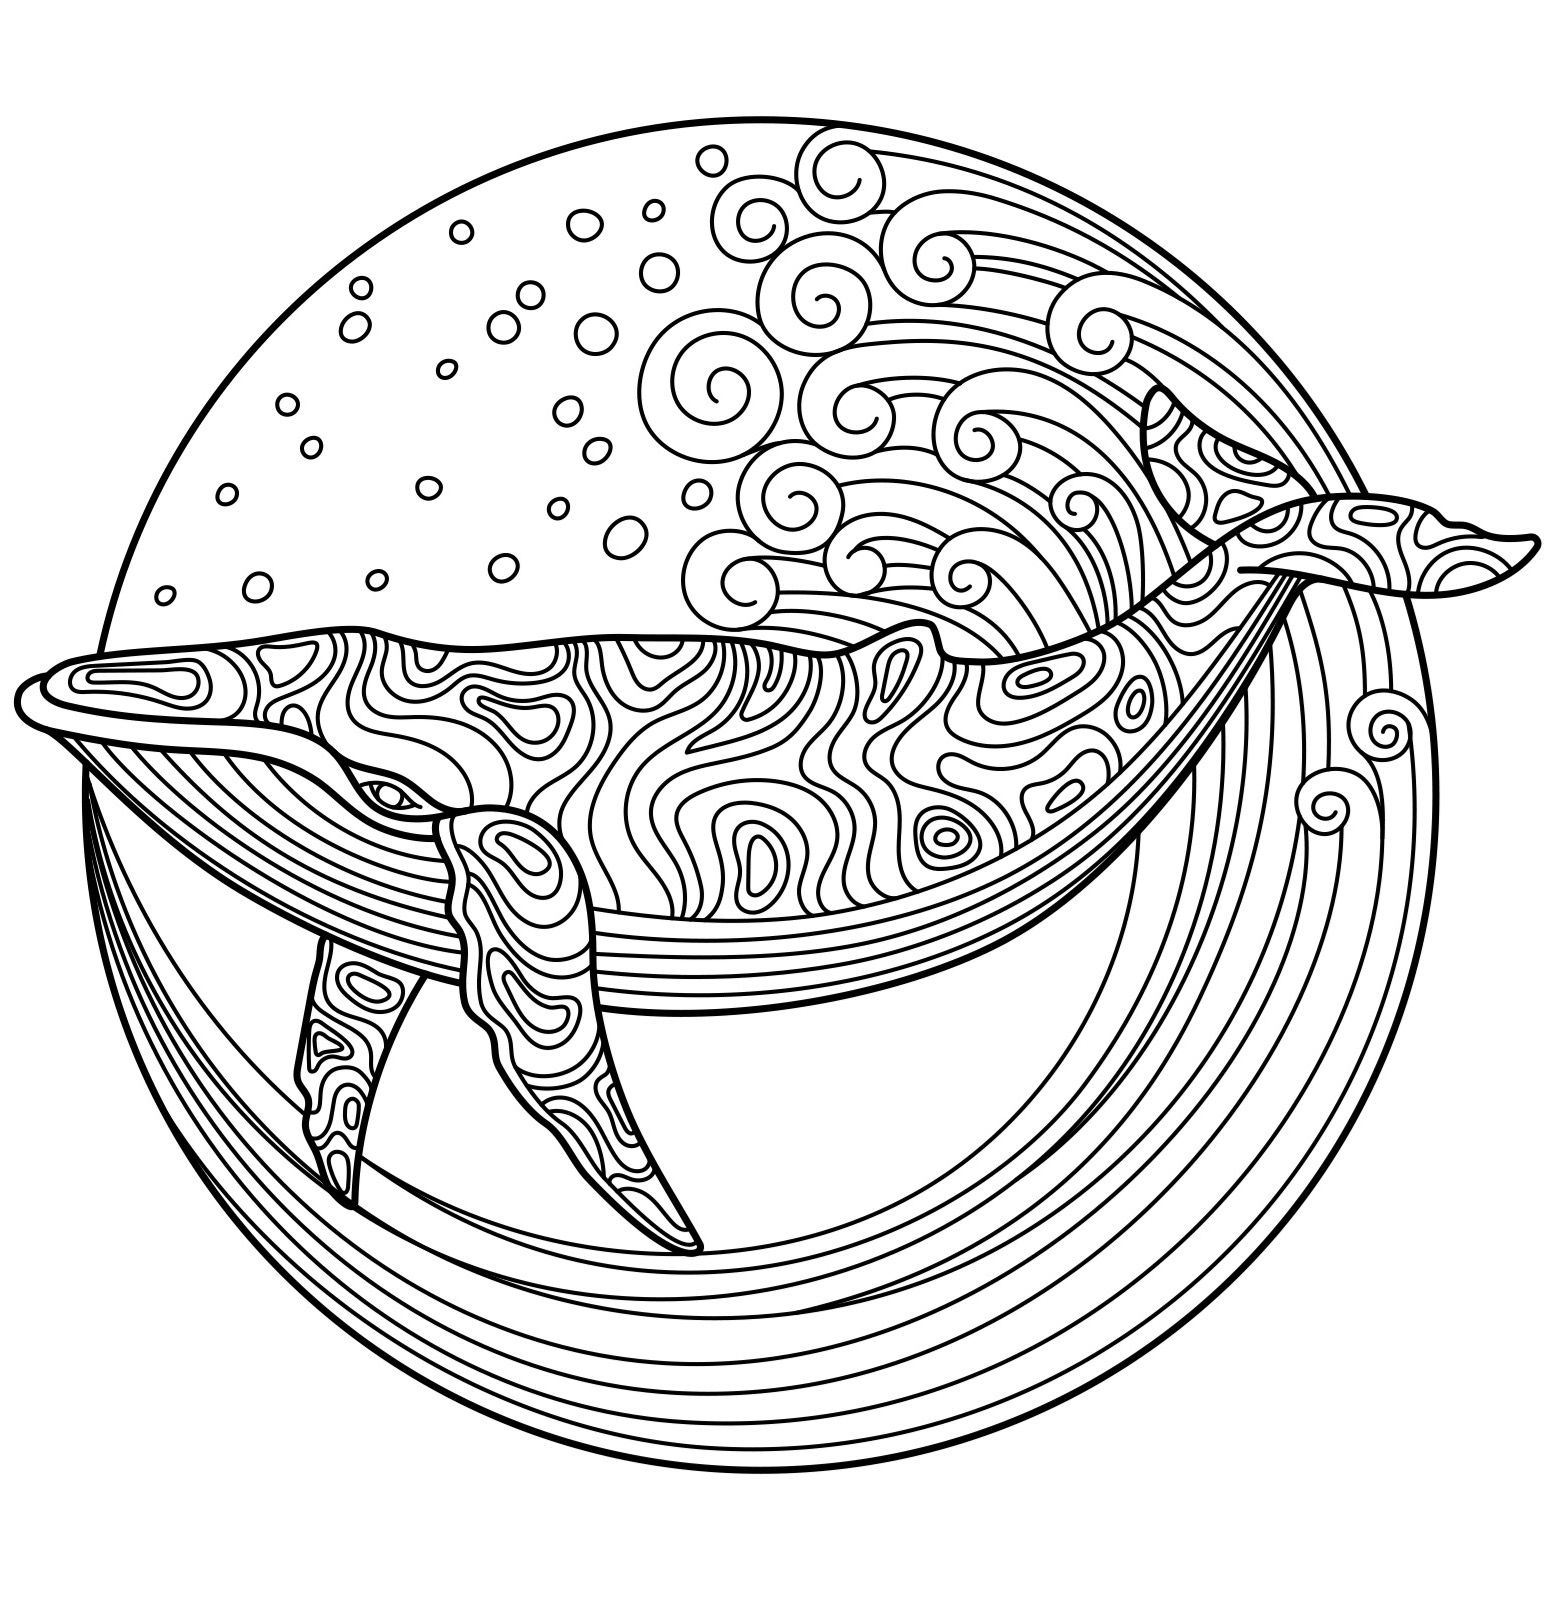 Whale To Color With Coloringbookforme Coloring Pages Animal